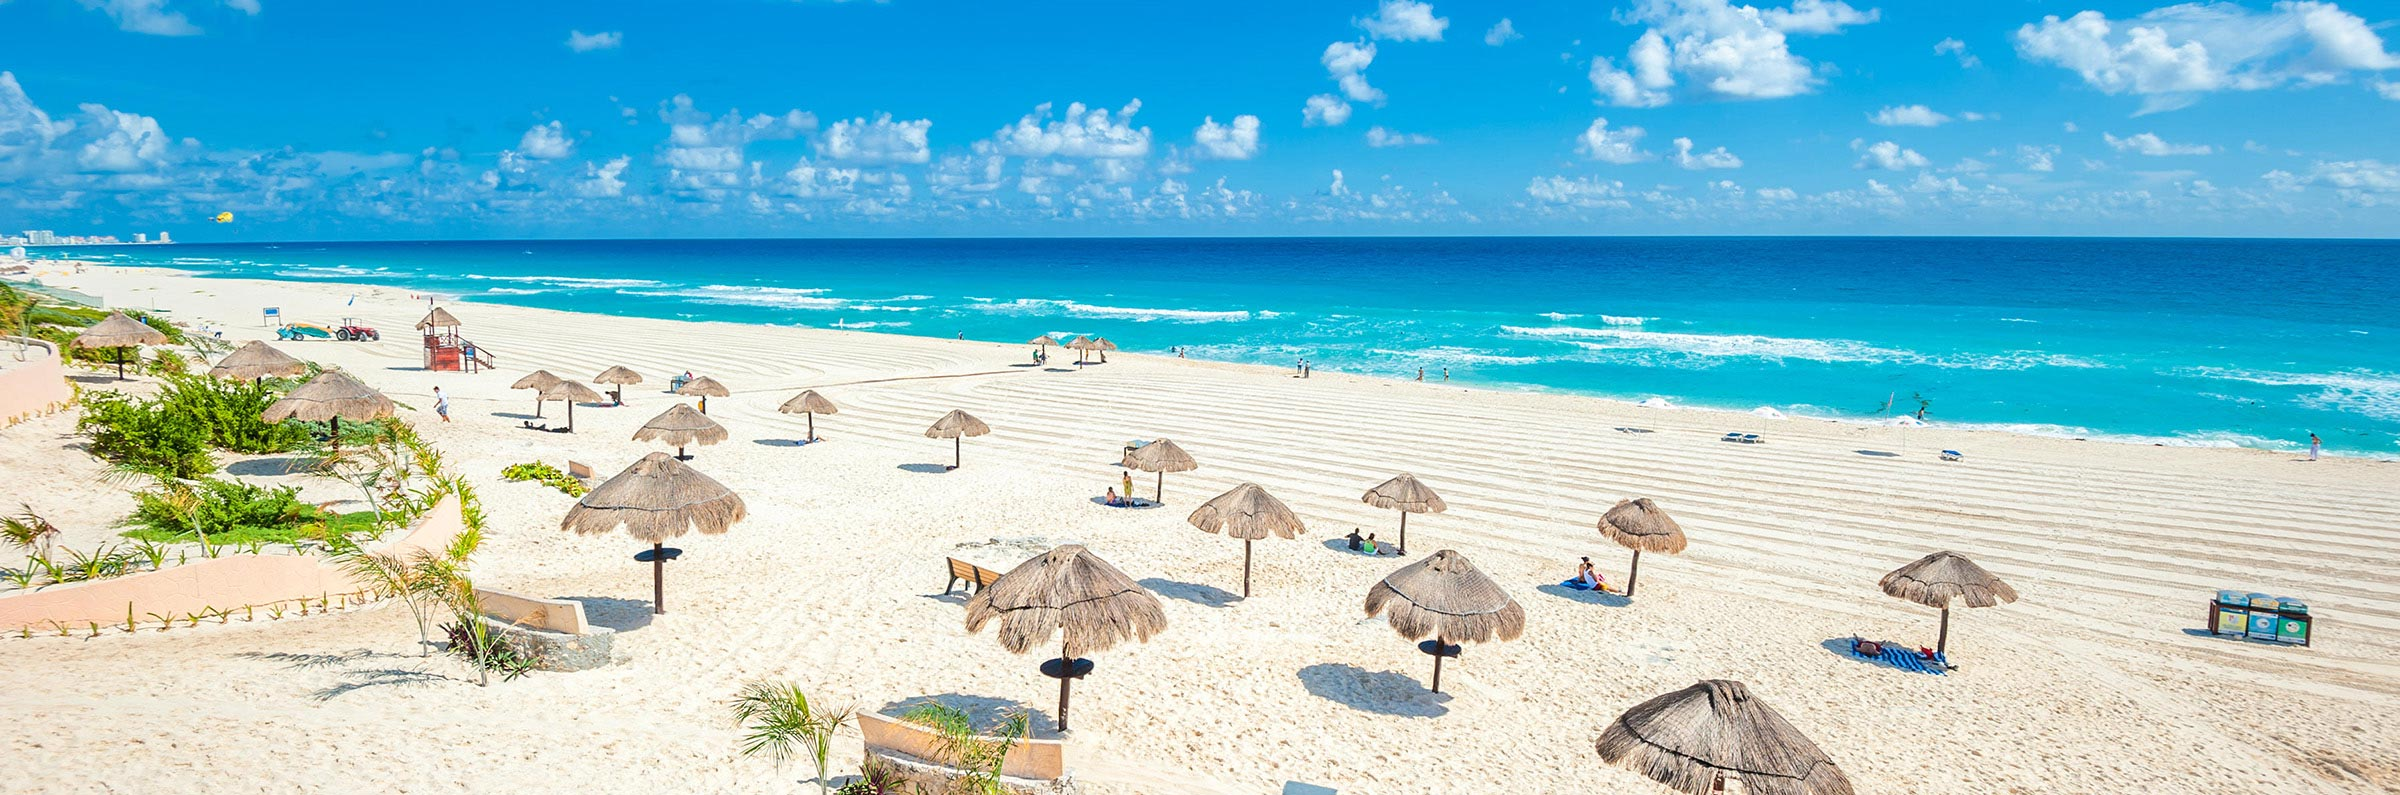 Sights and attractions in Cancun